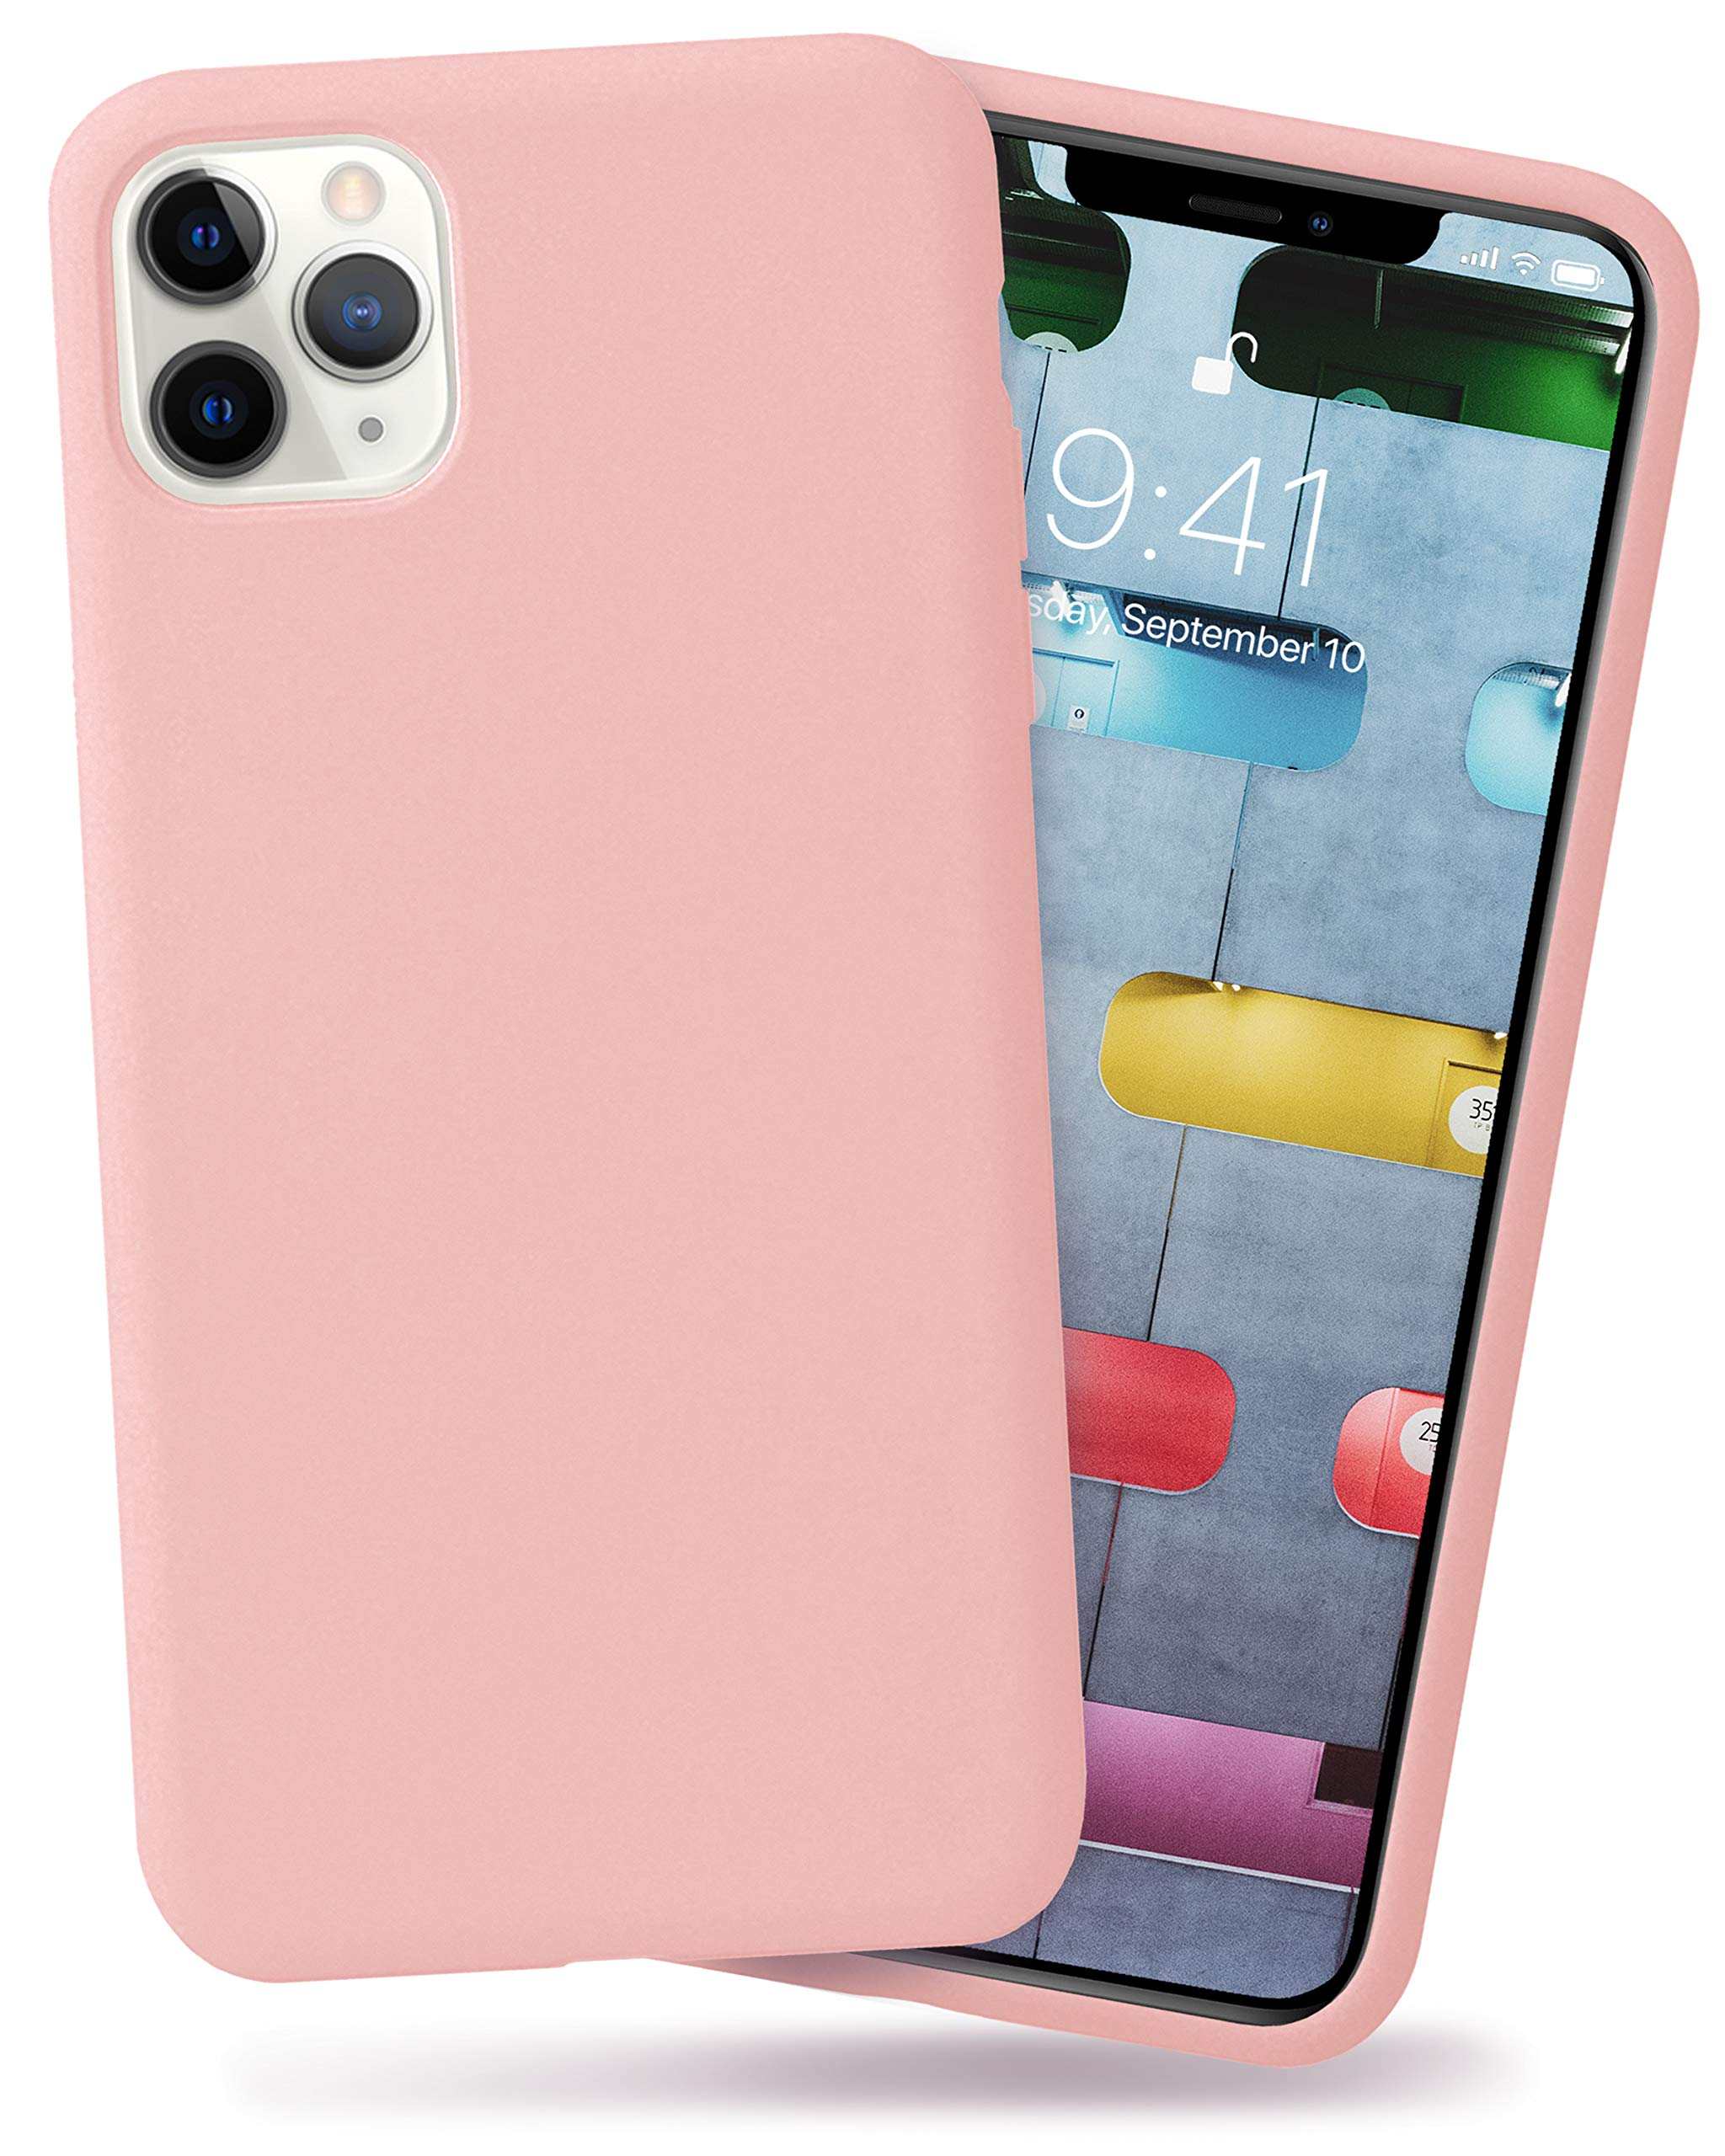 OCOMMO iPhone 11 Pro Silicone Case, Full Body Shockproof Protective Liquid Silicone iPhone 11 Pro Case with Soft Microfiber Lining, Wireless Charging Pad Compatible, Cherry Pink